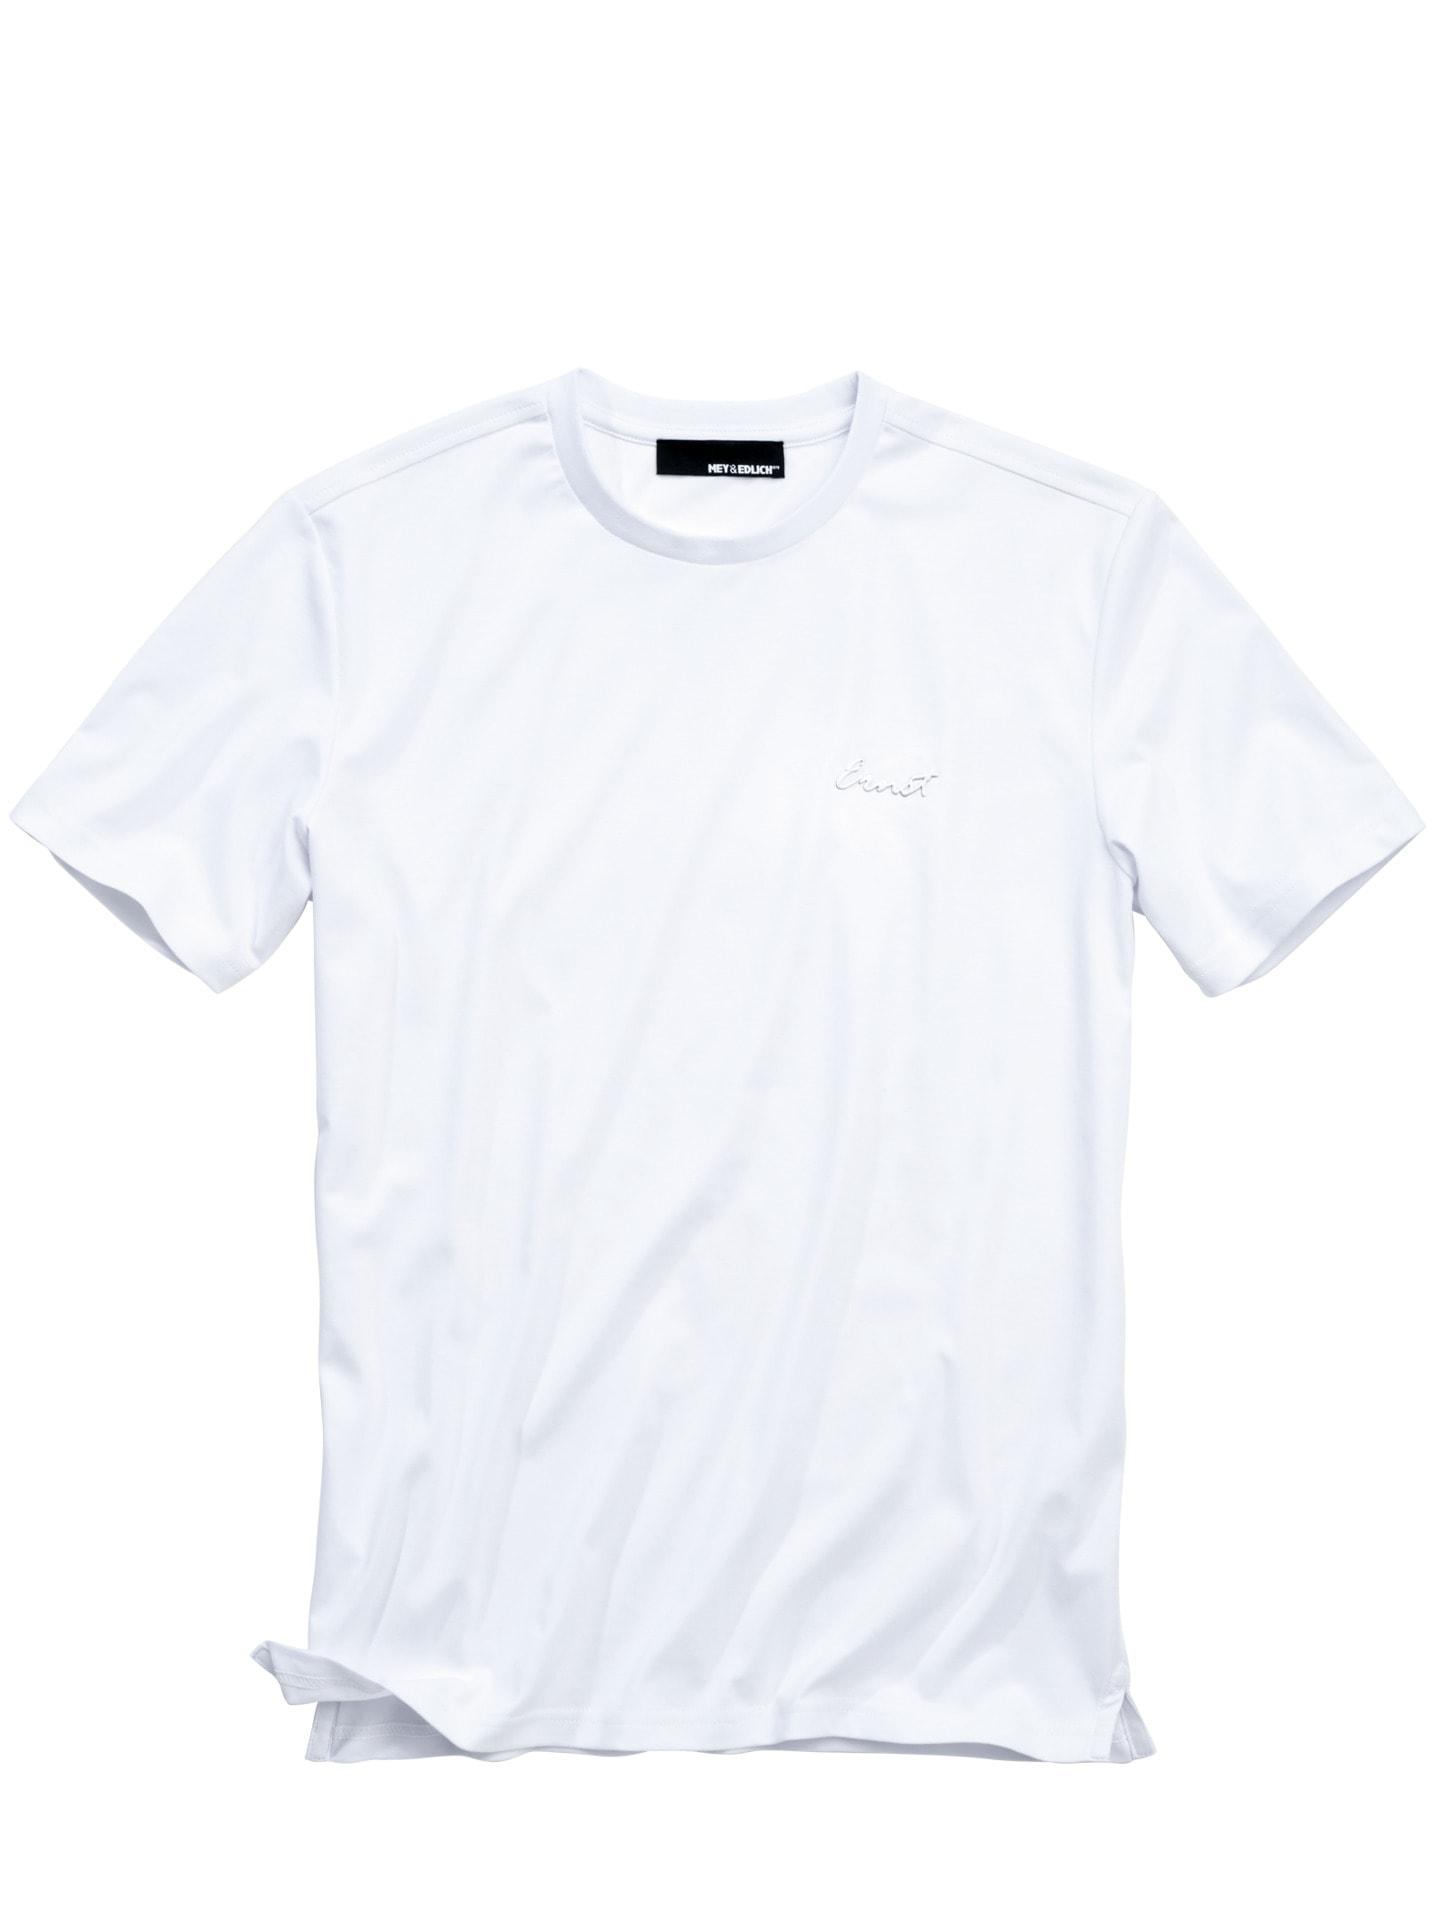 Herren Start Up Shirt papierweiß 46, 48, 50, 52, 54, 56, 58